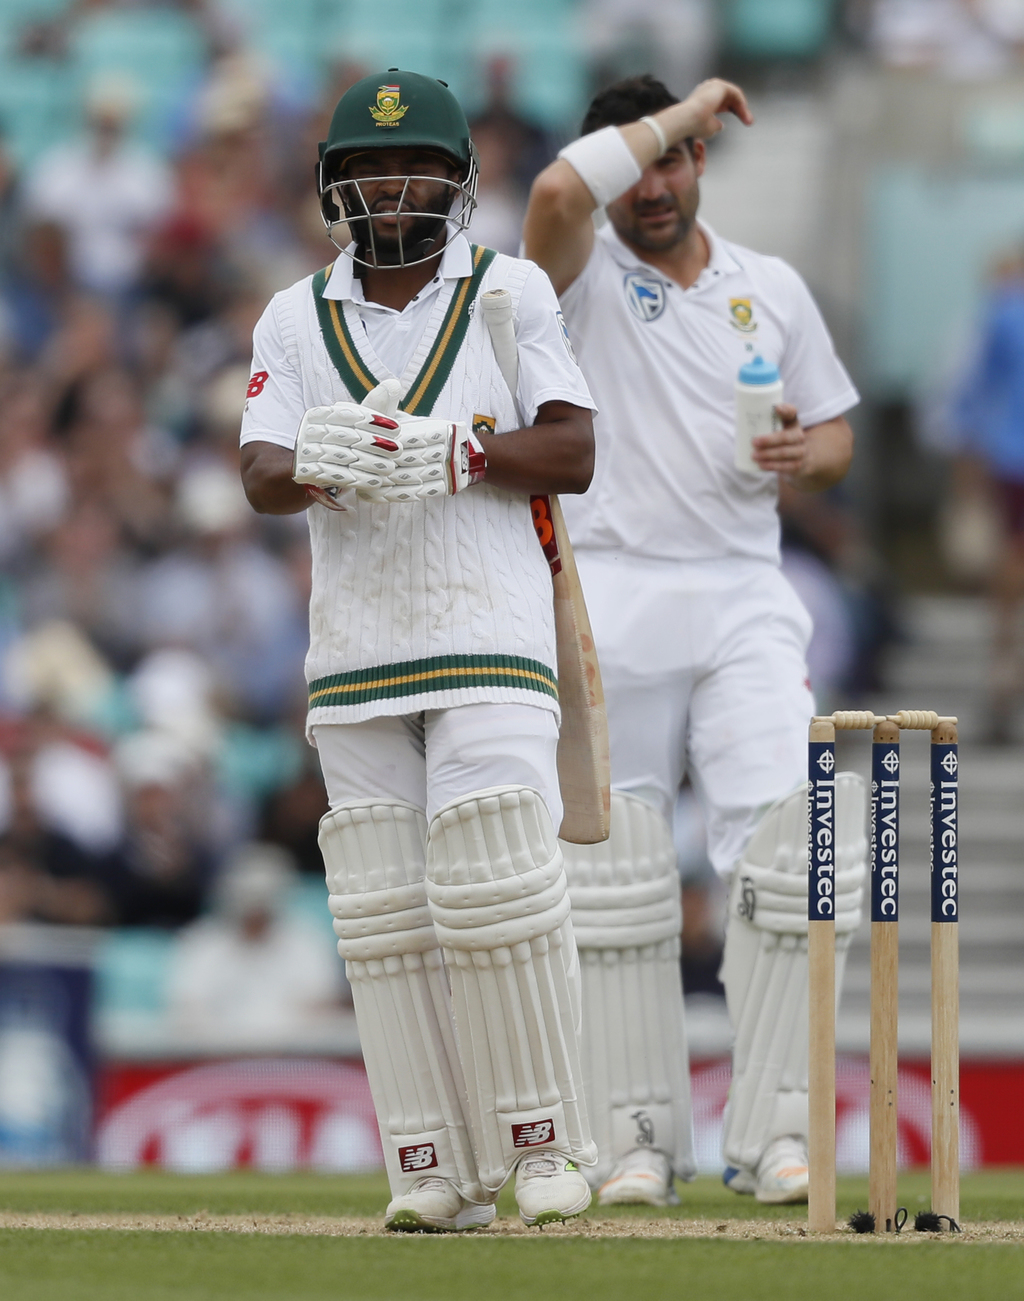 South Africa's Temba Bavuma leaves the pitch after being bowled lbw by England's Toby Roland-Jones on the fifth day of the third test match between En...